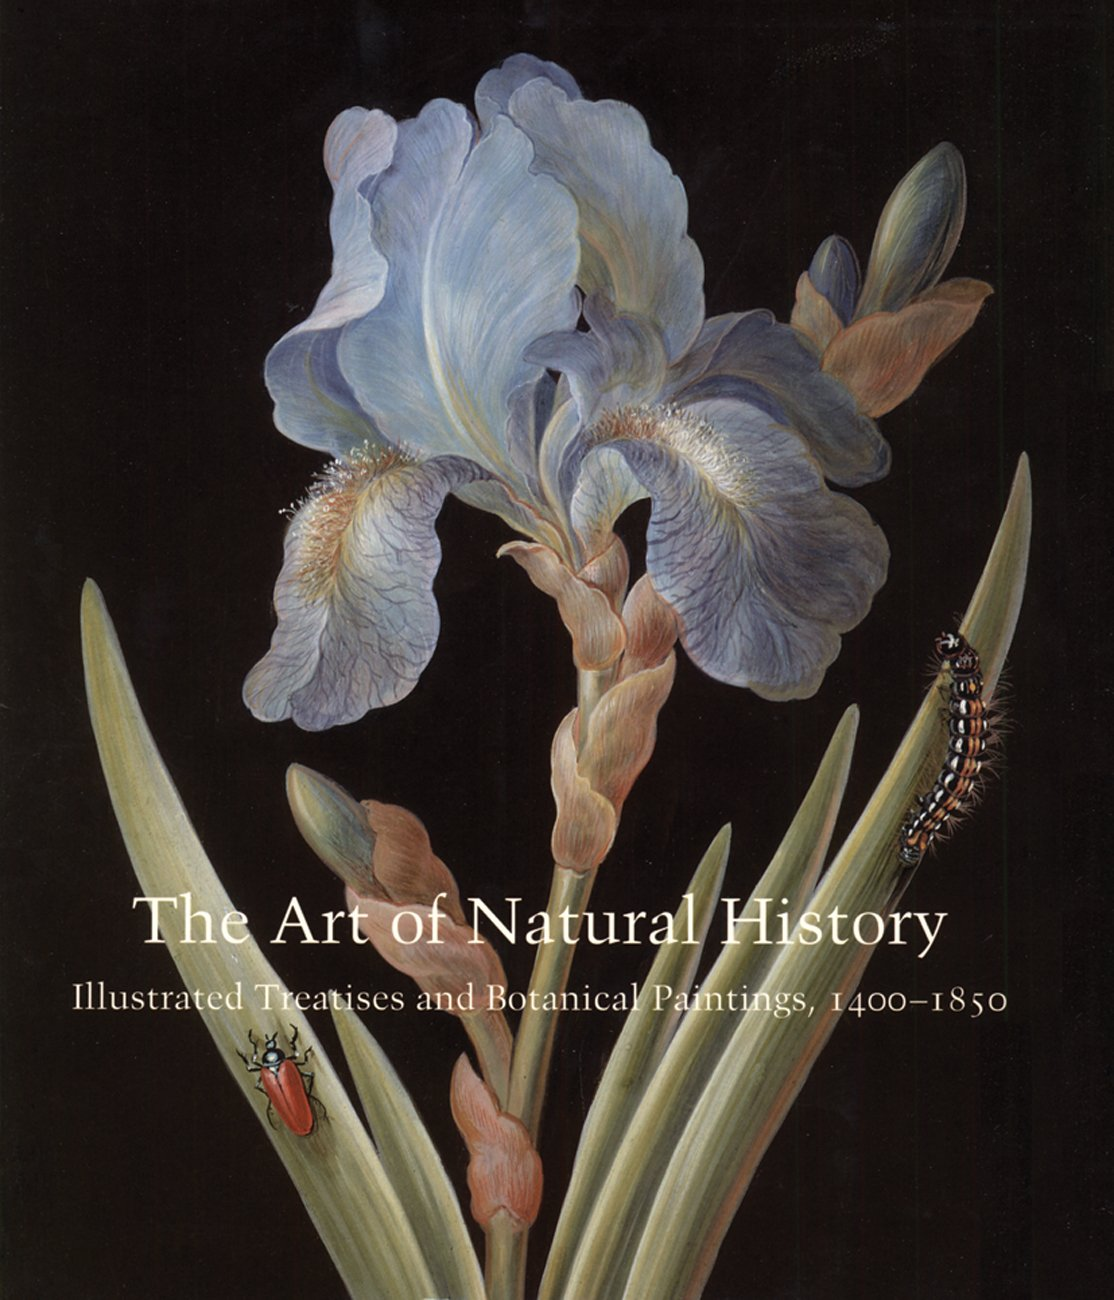 The Art of Natural History: Illustrated Treatises and Botanical Paintings, 1400-1850 (Studies in the History of Art Series) ebook